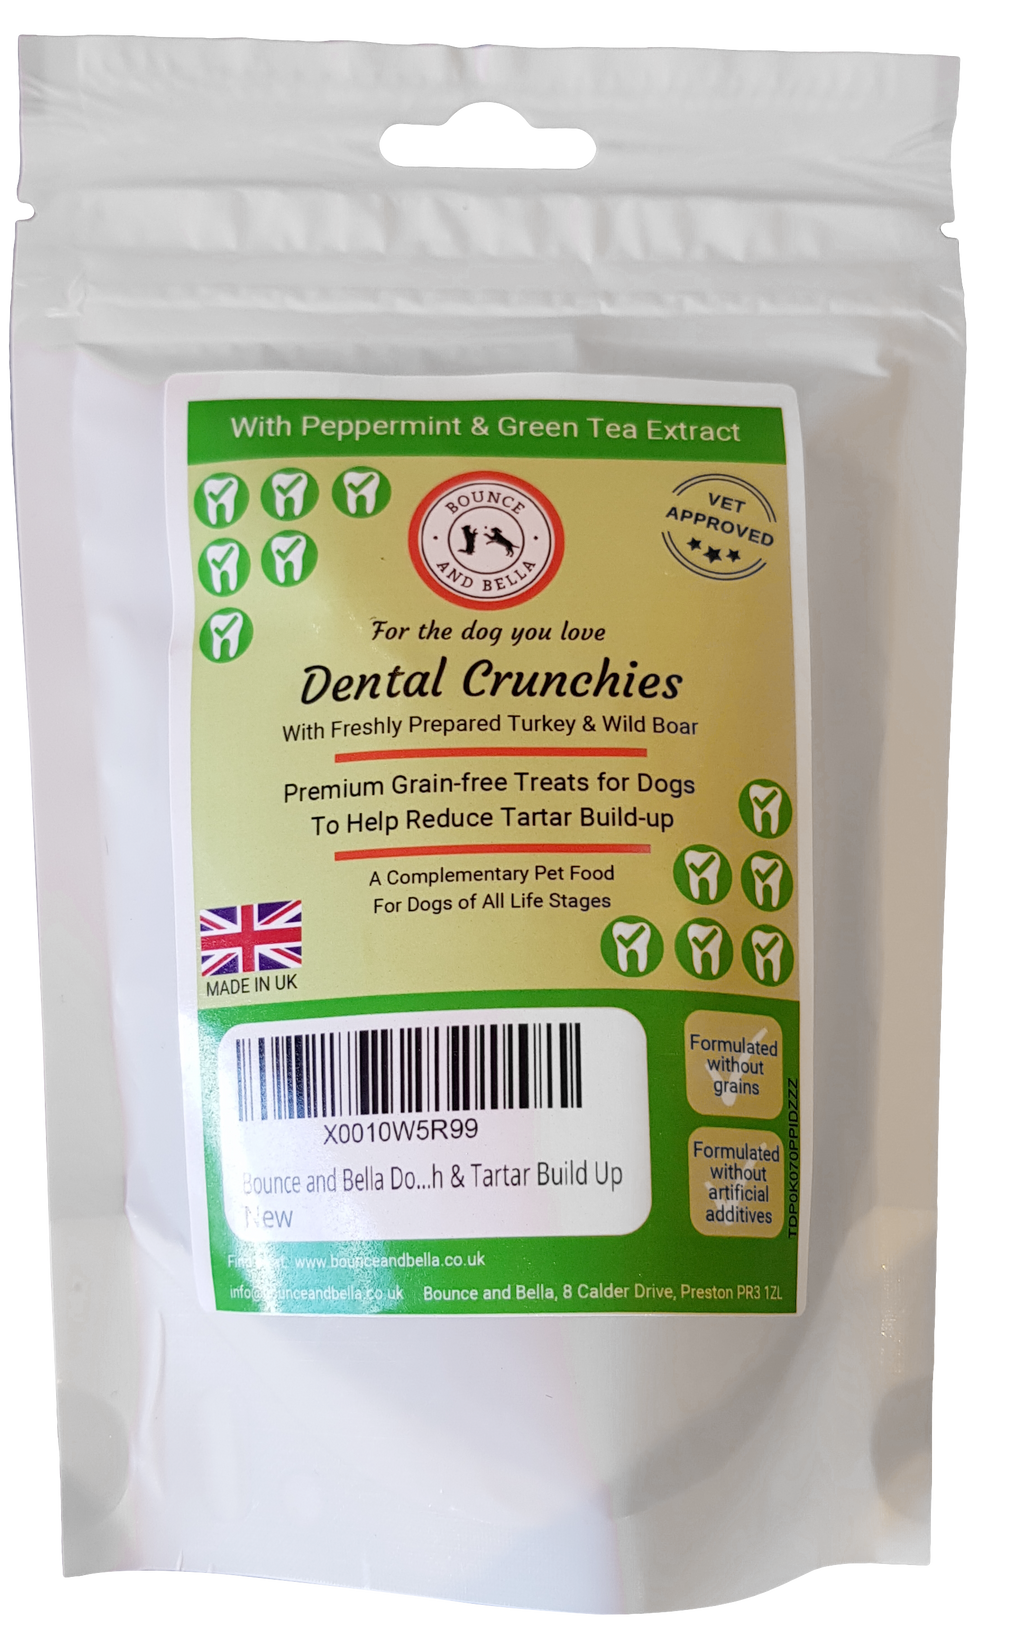 Bounce and Bella Dog Breath Freshener & Dental Care - Dental Crunchies (68g pack)